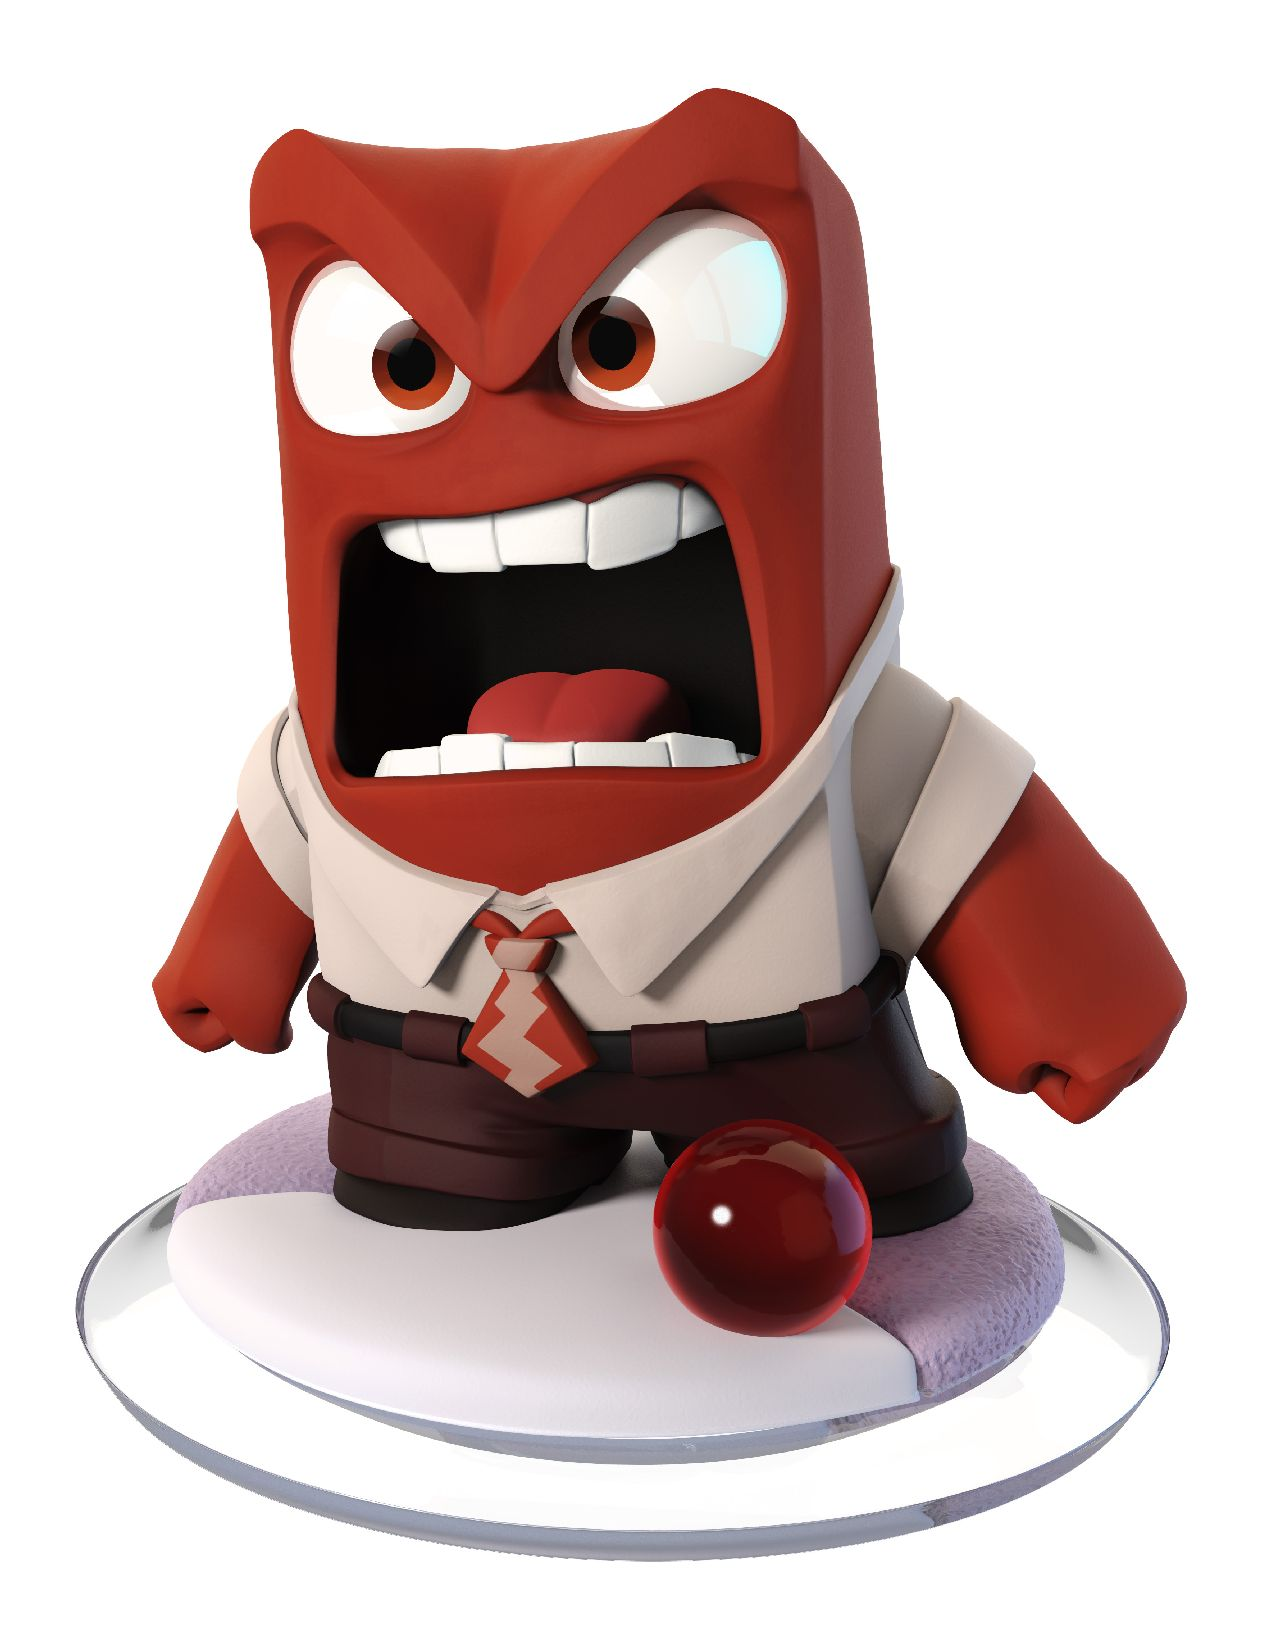 Disney Infinity 3.0 Inside Out Play Set Anger